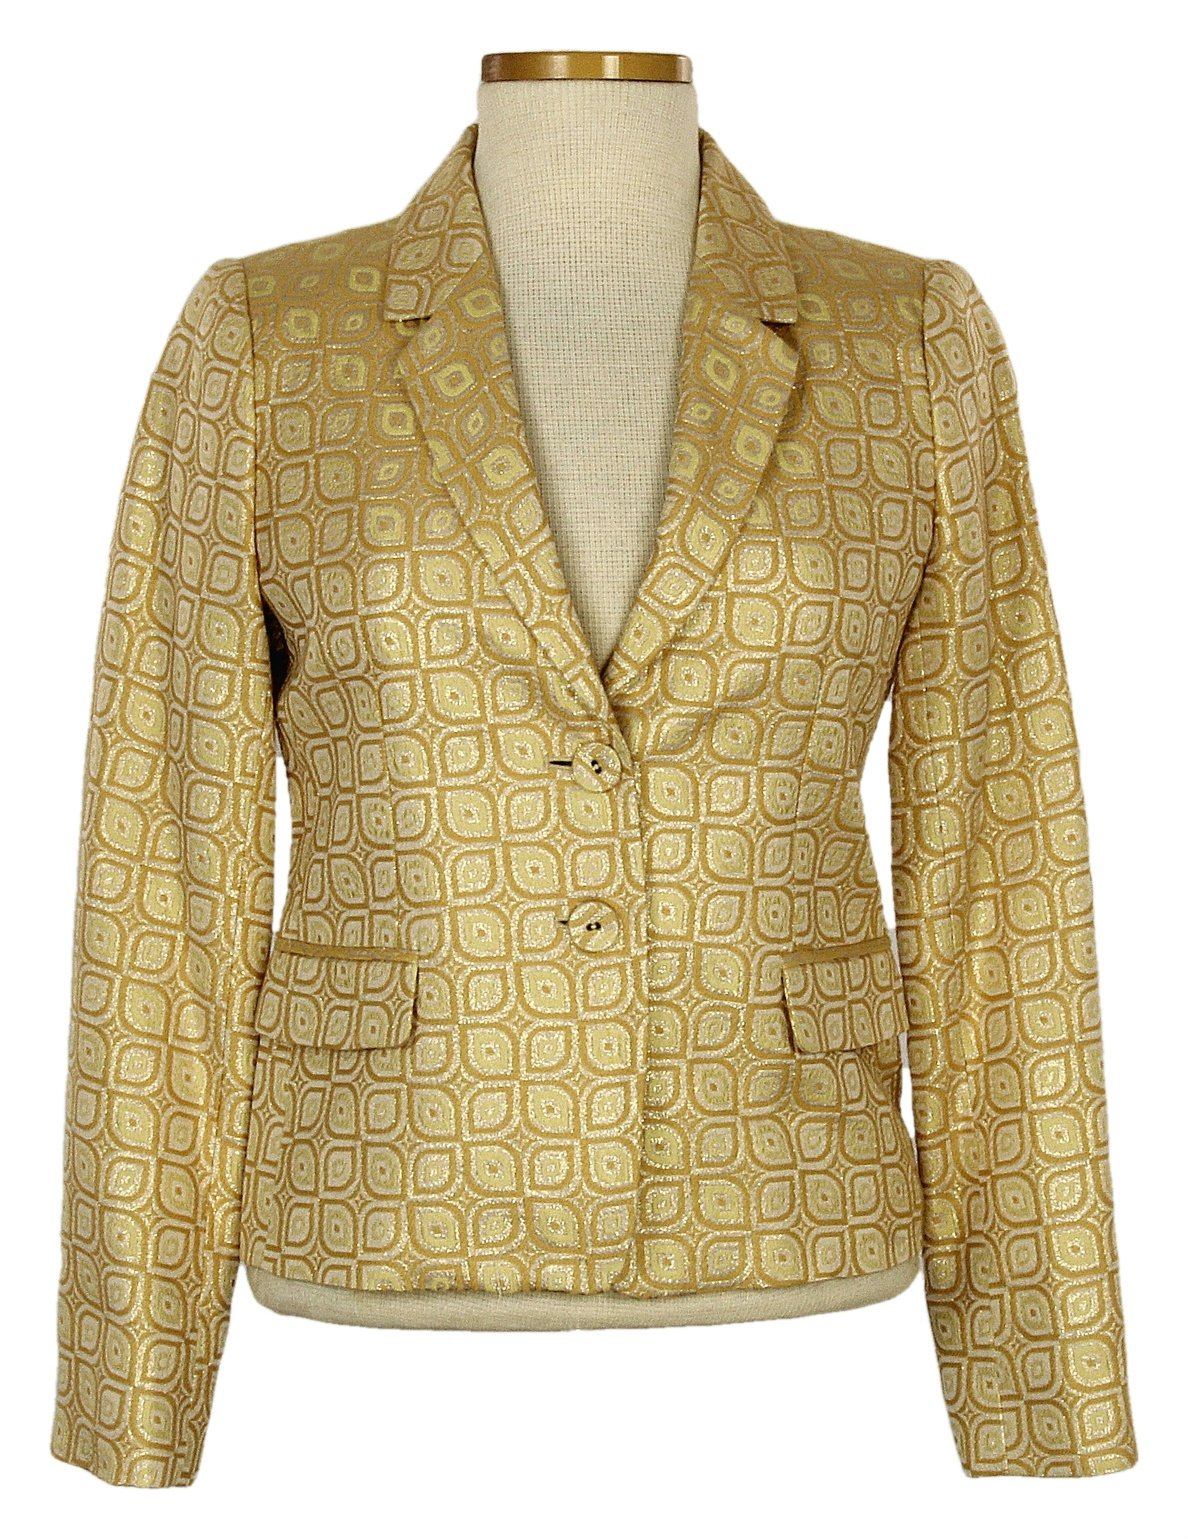 J Crew Gold Wallpaper Jacquard Jacket Size 4 Style 14993 New by J.Crew